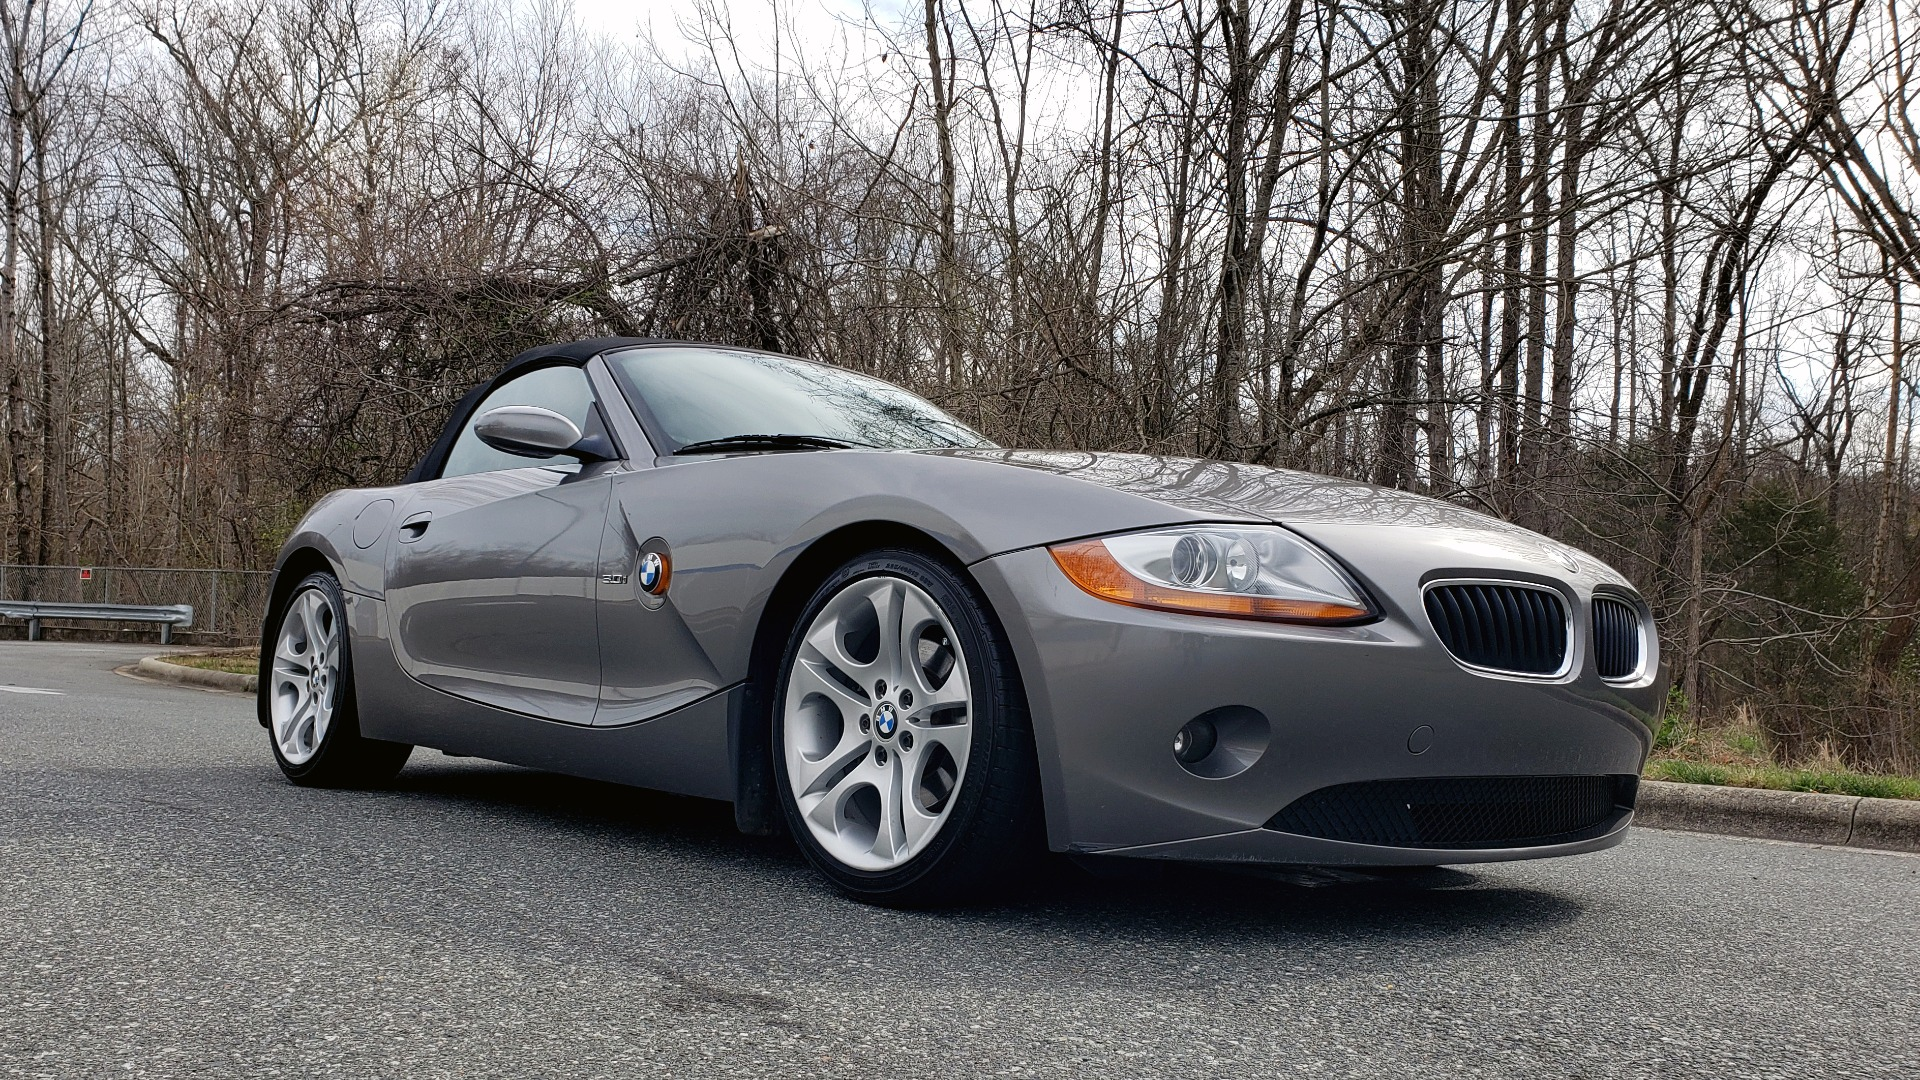 Used 2003 BMW Z4 3.0i ROADSTER / 6-SPD MAN / PREMIUM PKG / SPORT PKG / HTD STS for sale Sold at Formula Imports in Charlotte NC 28227 10